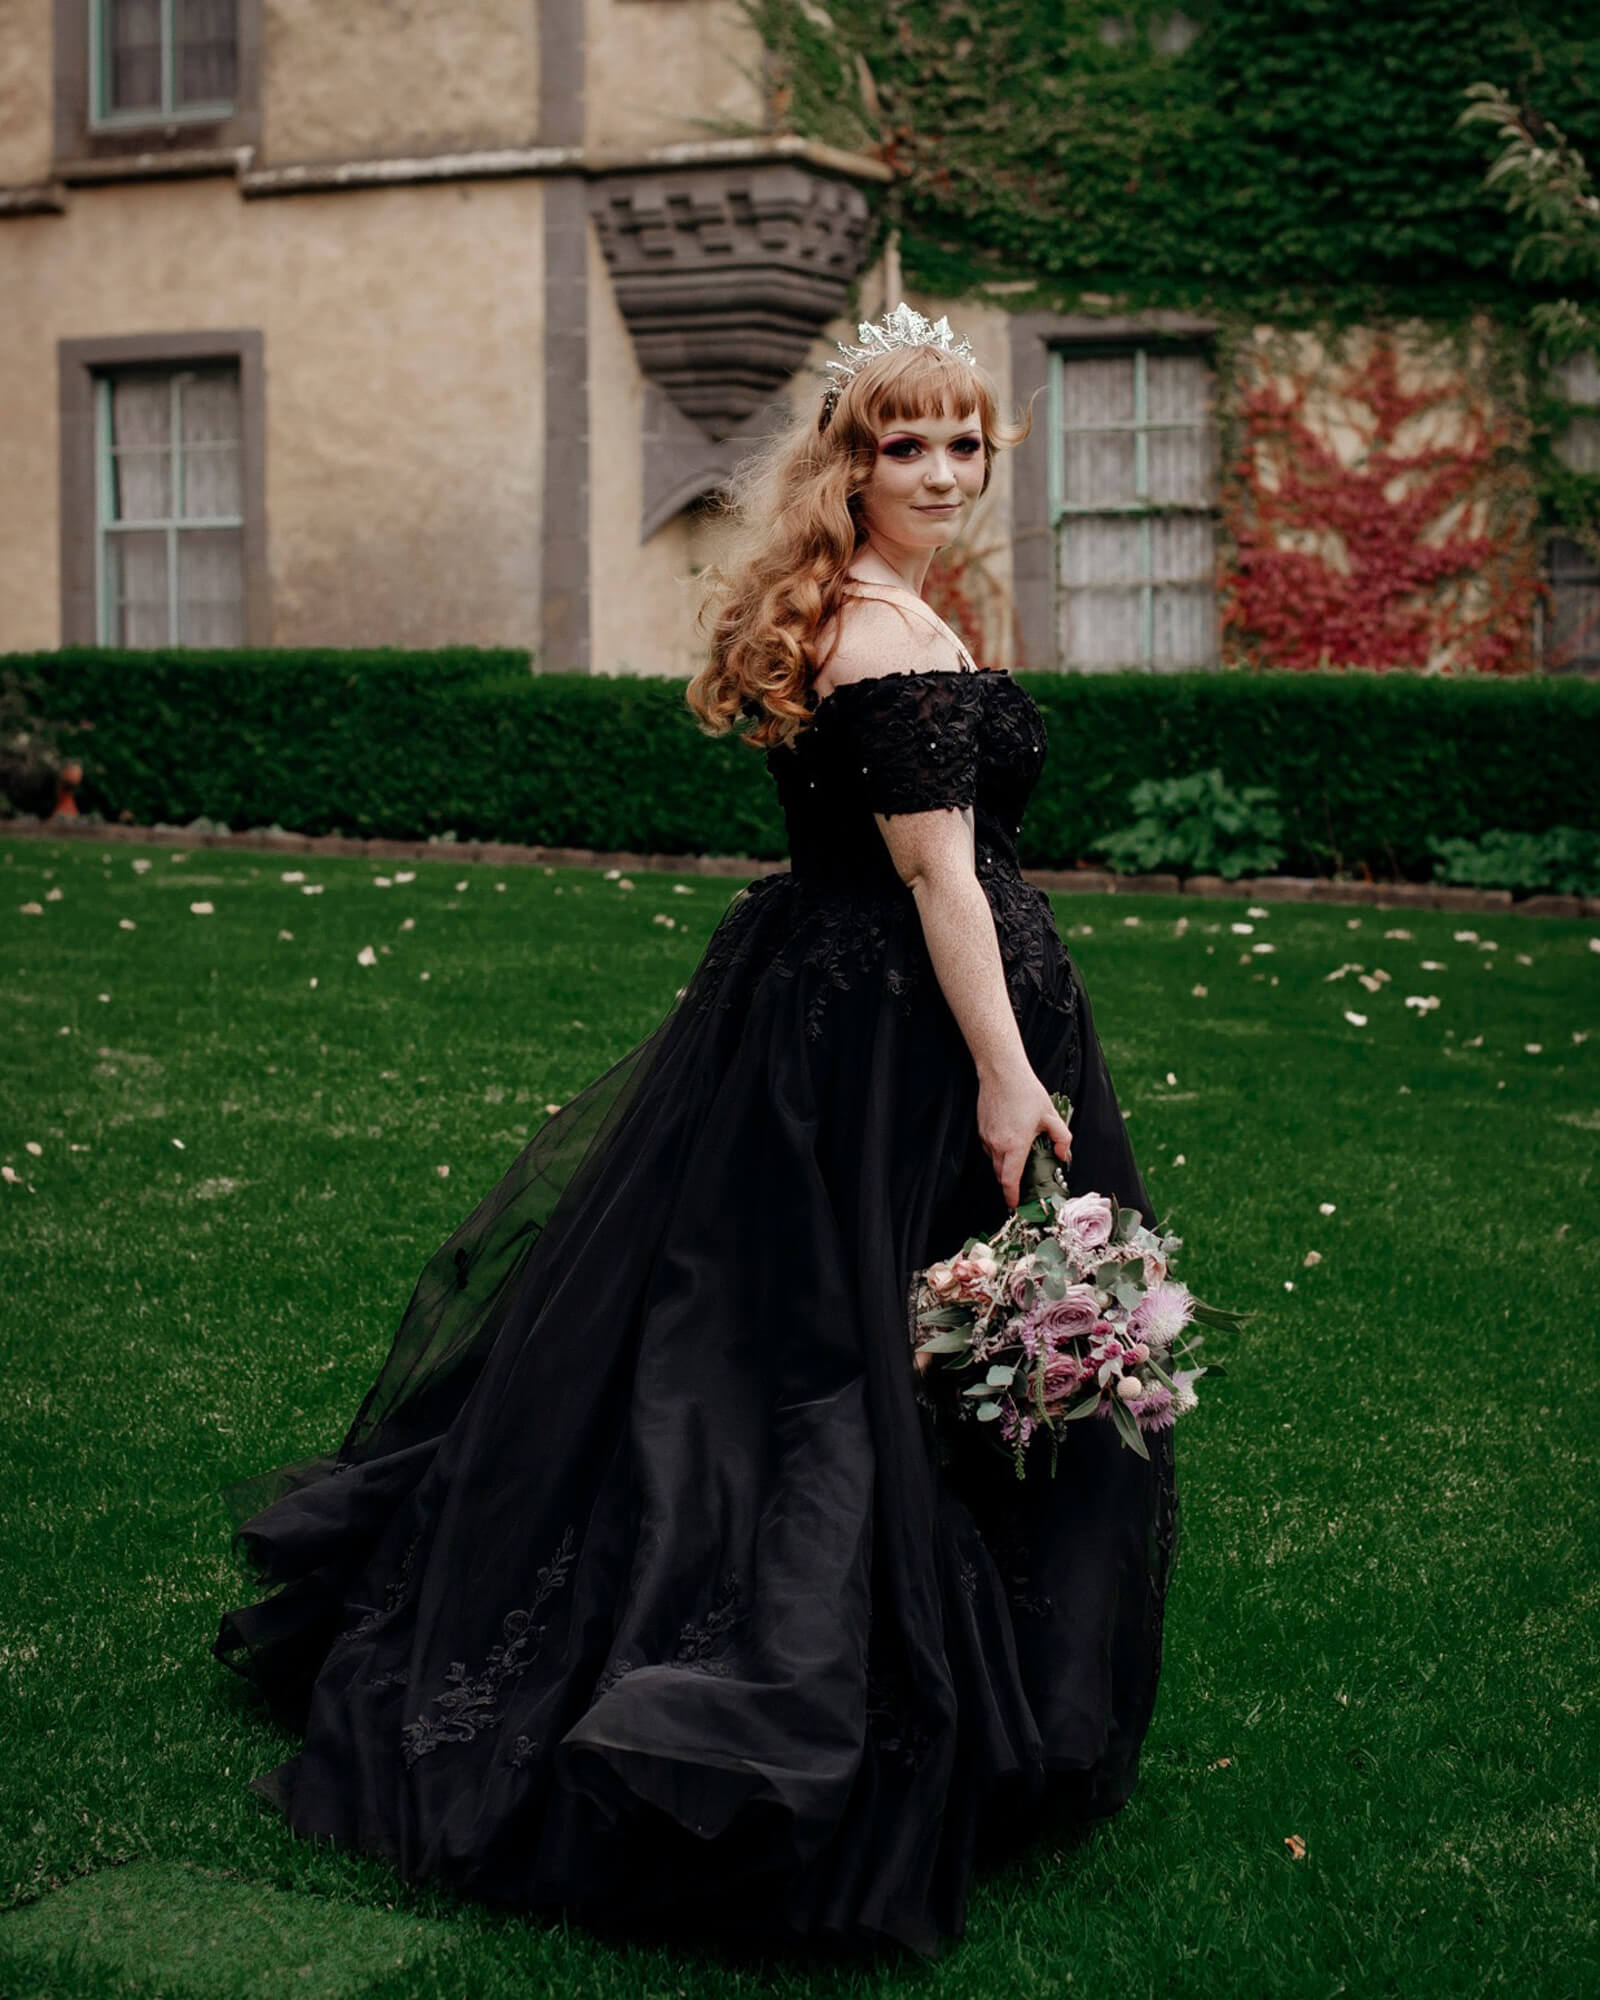 How Gorgeous Emalee looks in the black wedding dress